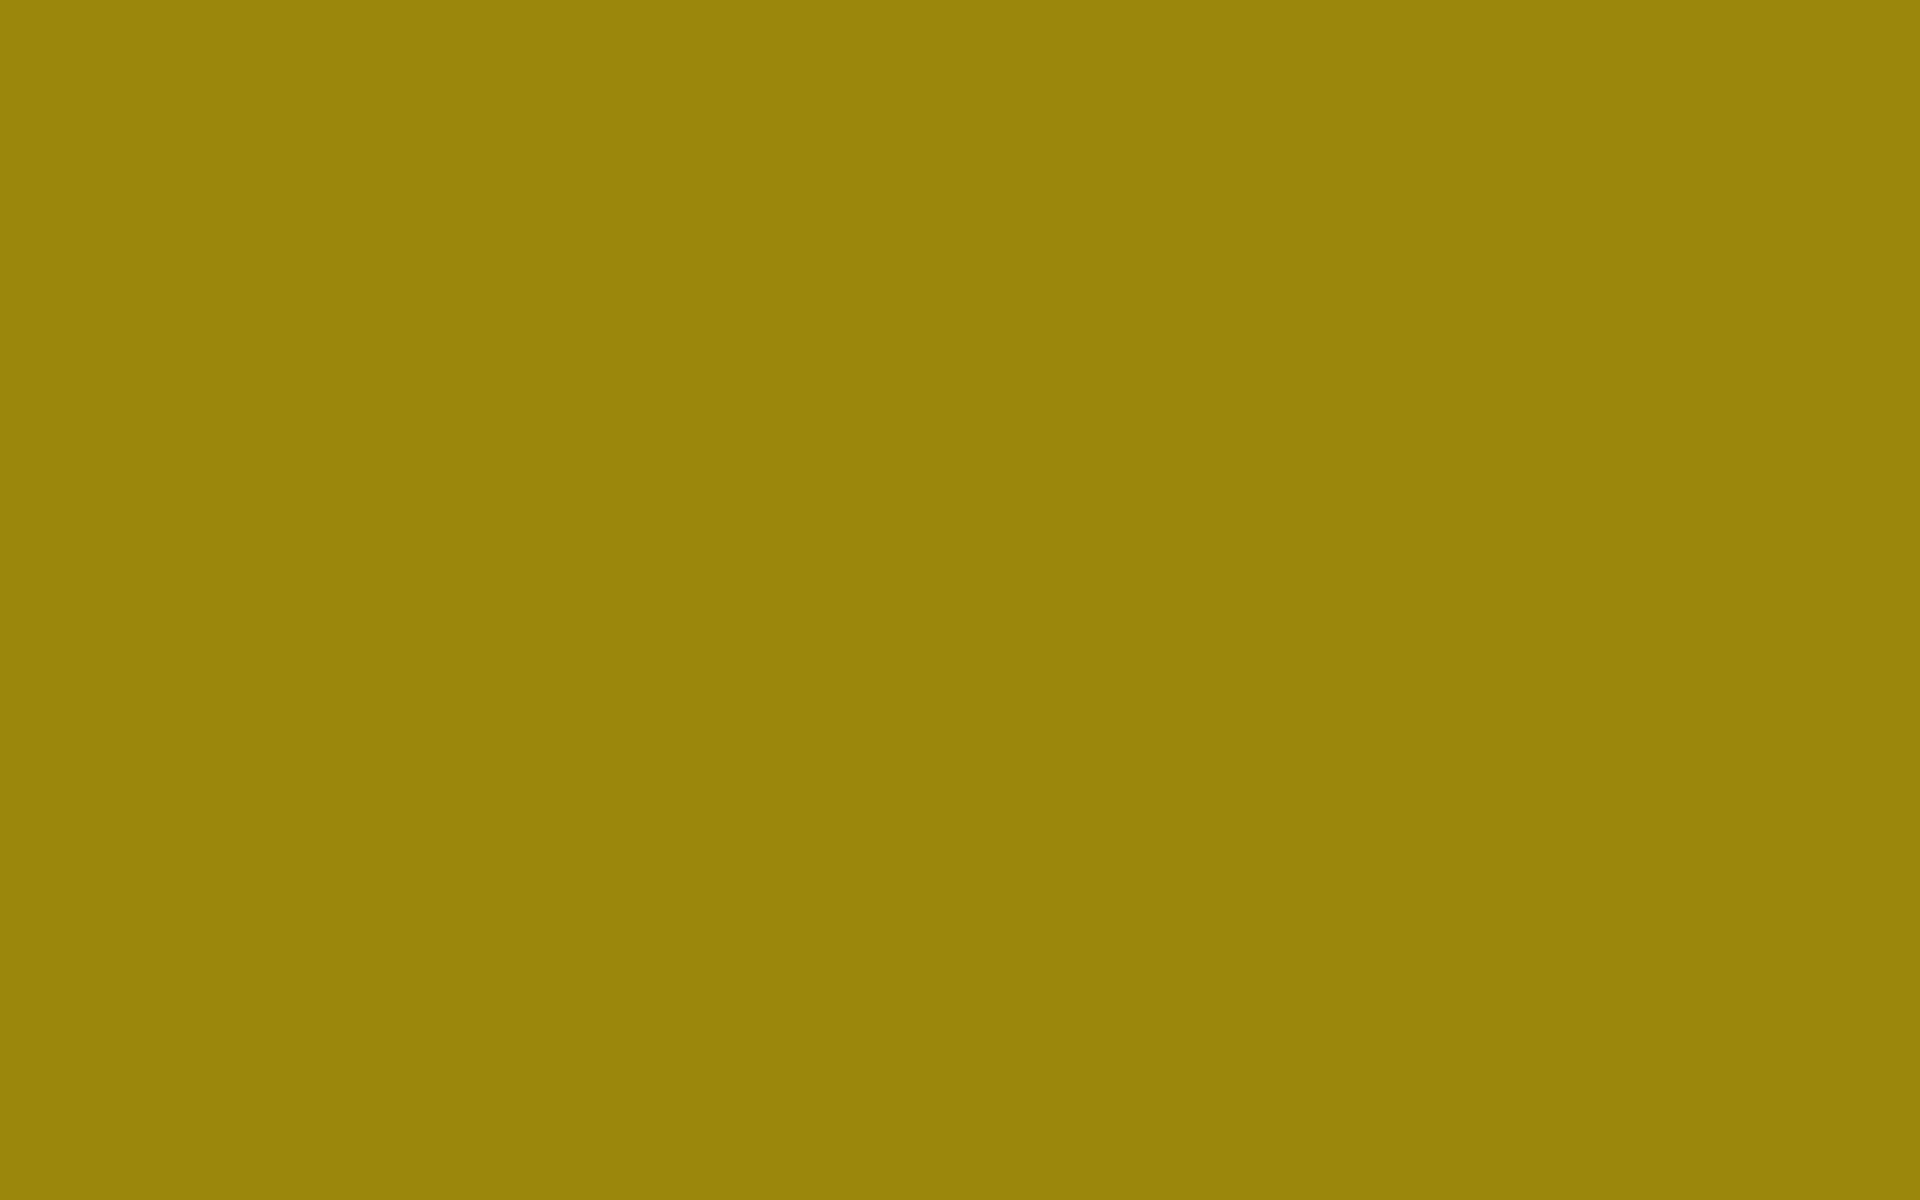 1920x1200 Dark Yellow Solid Color Background